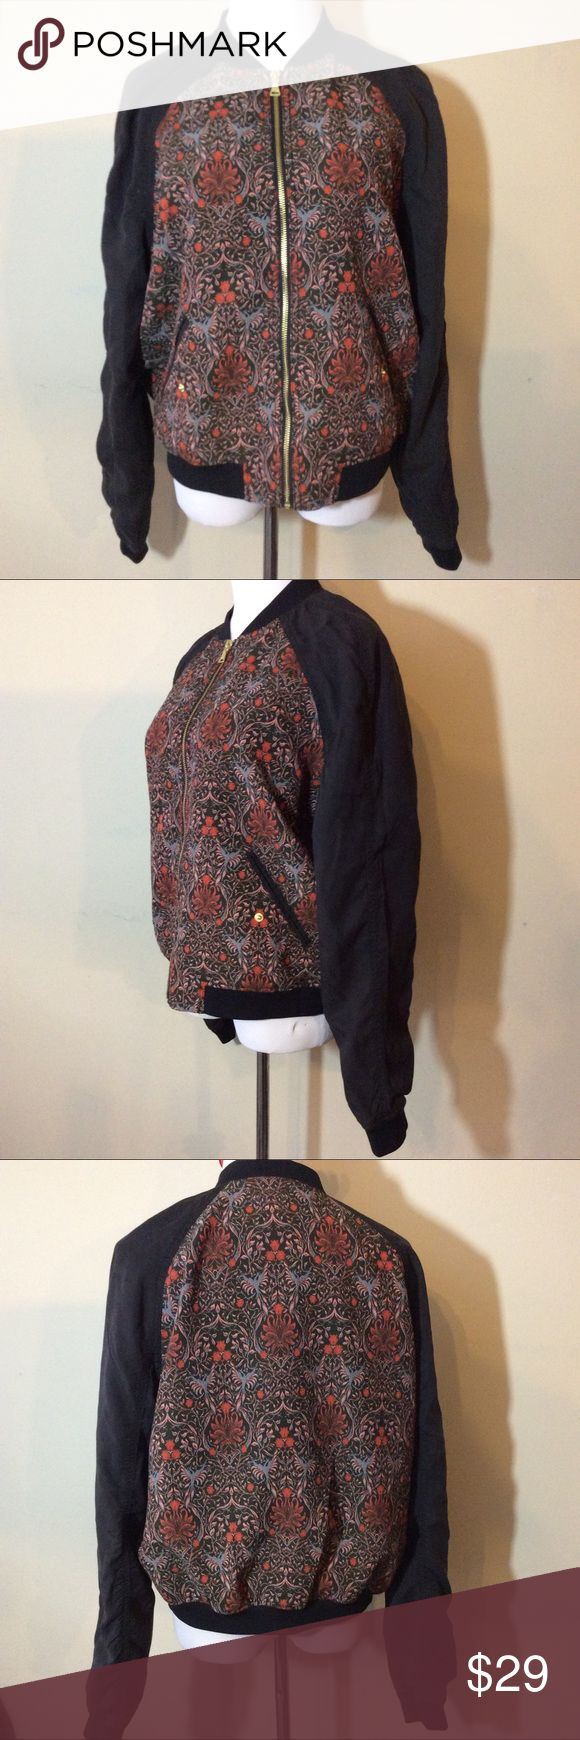 "EXPRESS Black Floral Print Bomber Jacket Medium Make this yours! New without tag EXPRESS Women's Black Floral Zip-up Bomber Jacket. Great for Spring!  The Measurements: Tag Size: Medium Chest: 44"" Length: 22""   Condition: No signs of wear Express Jackets & Coats"